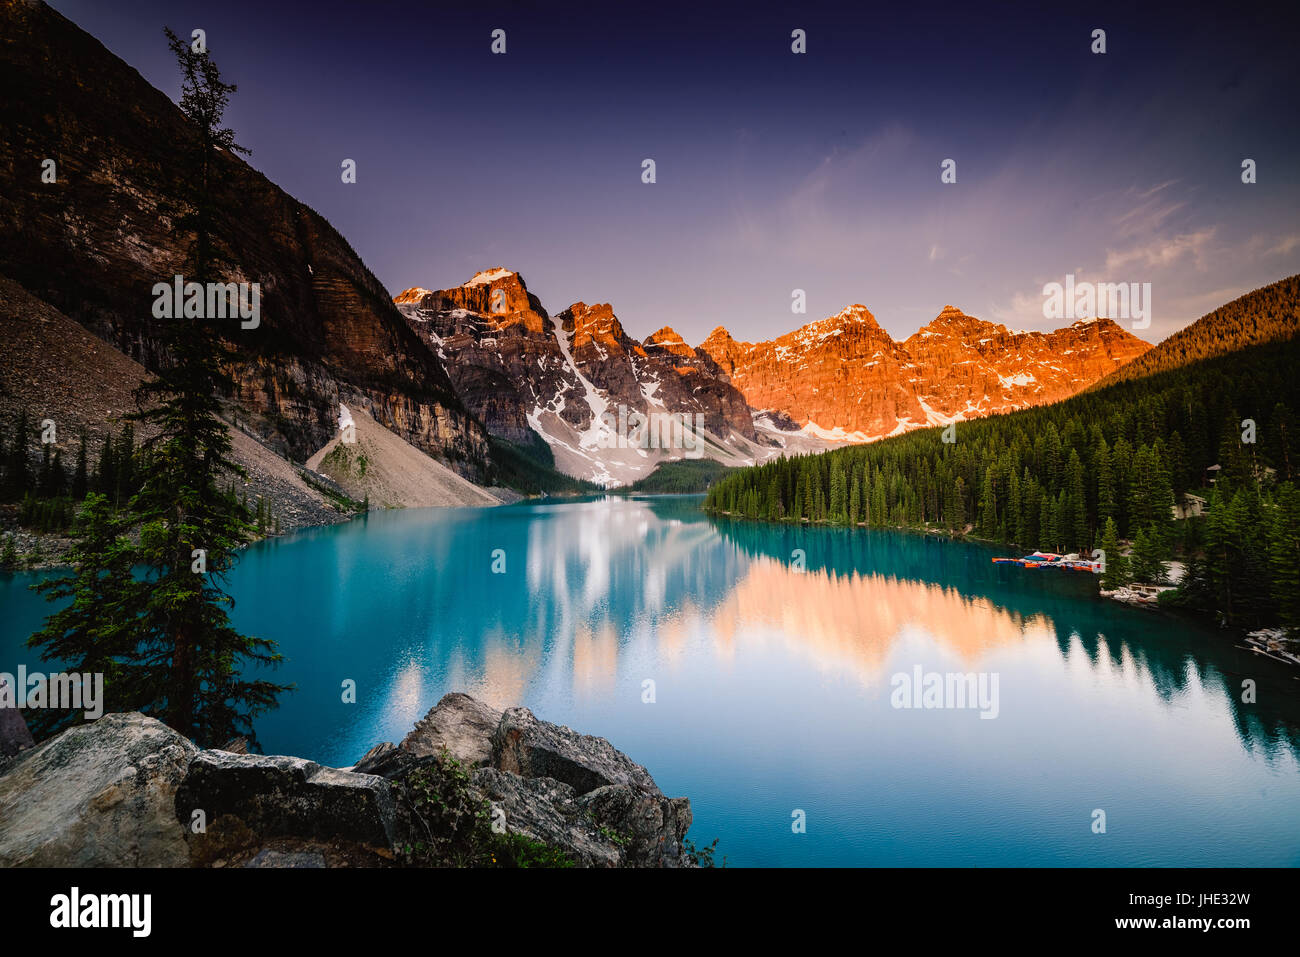 Moraine Lake at sunrise, Banff, Canada - Stock Image